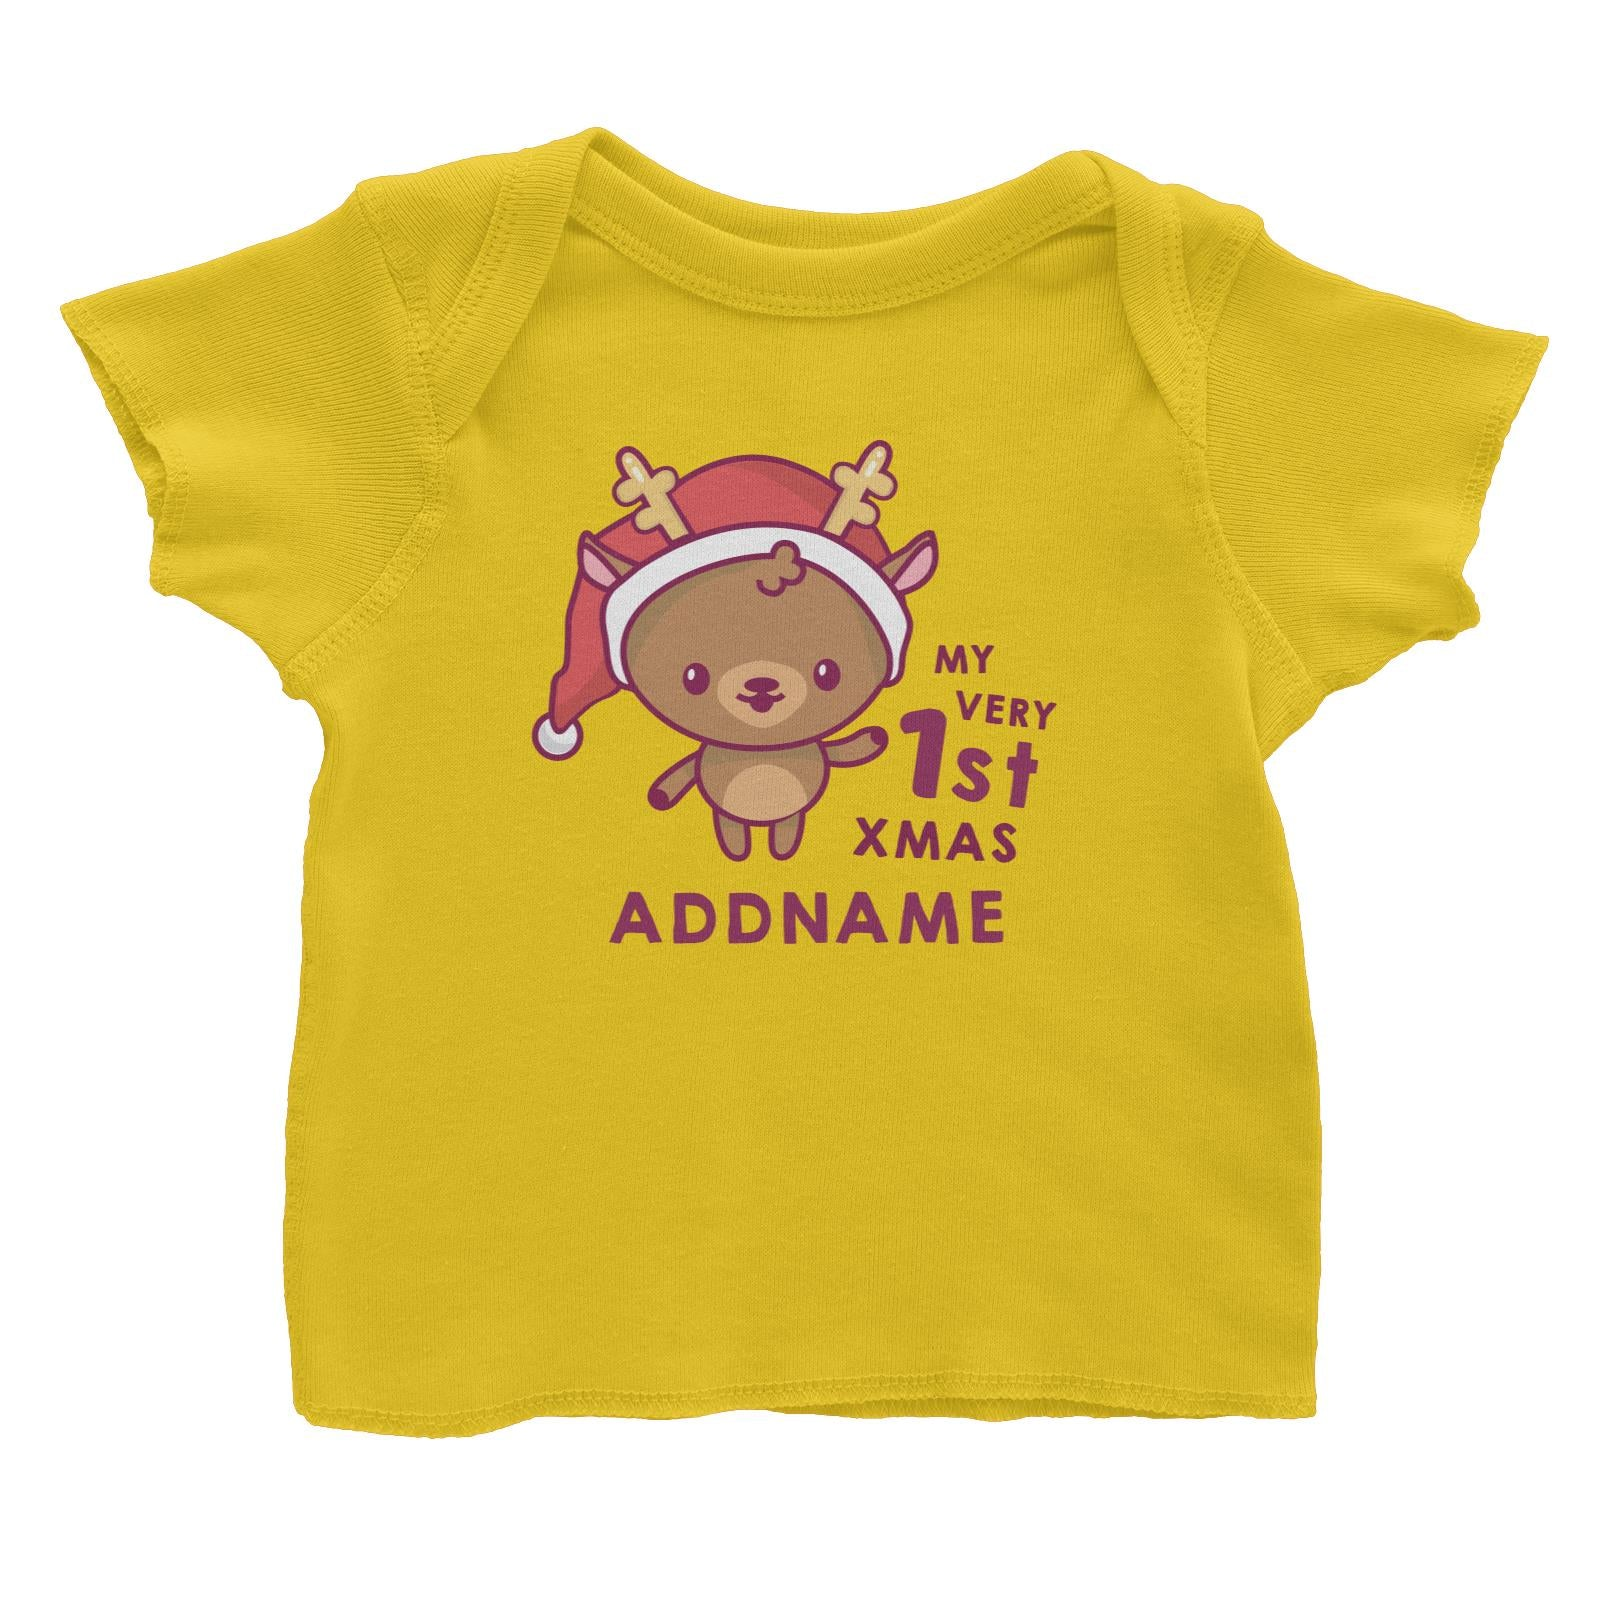 Christmas My Very 1st Deer Addname Baby T-Shirt